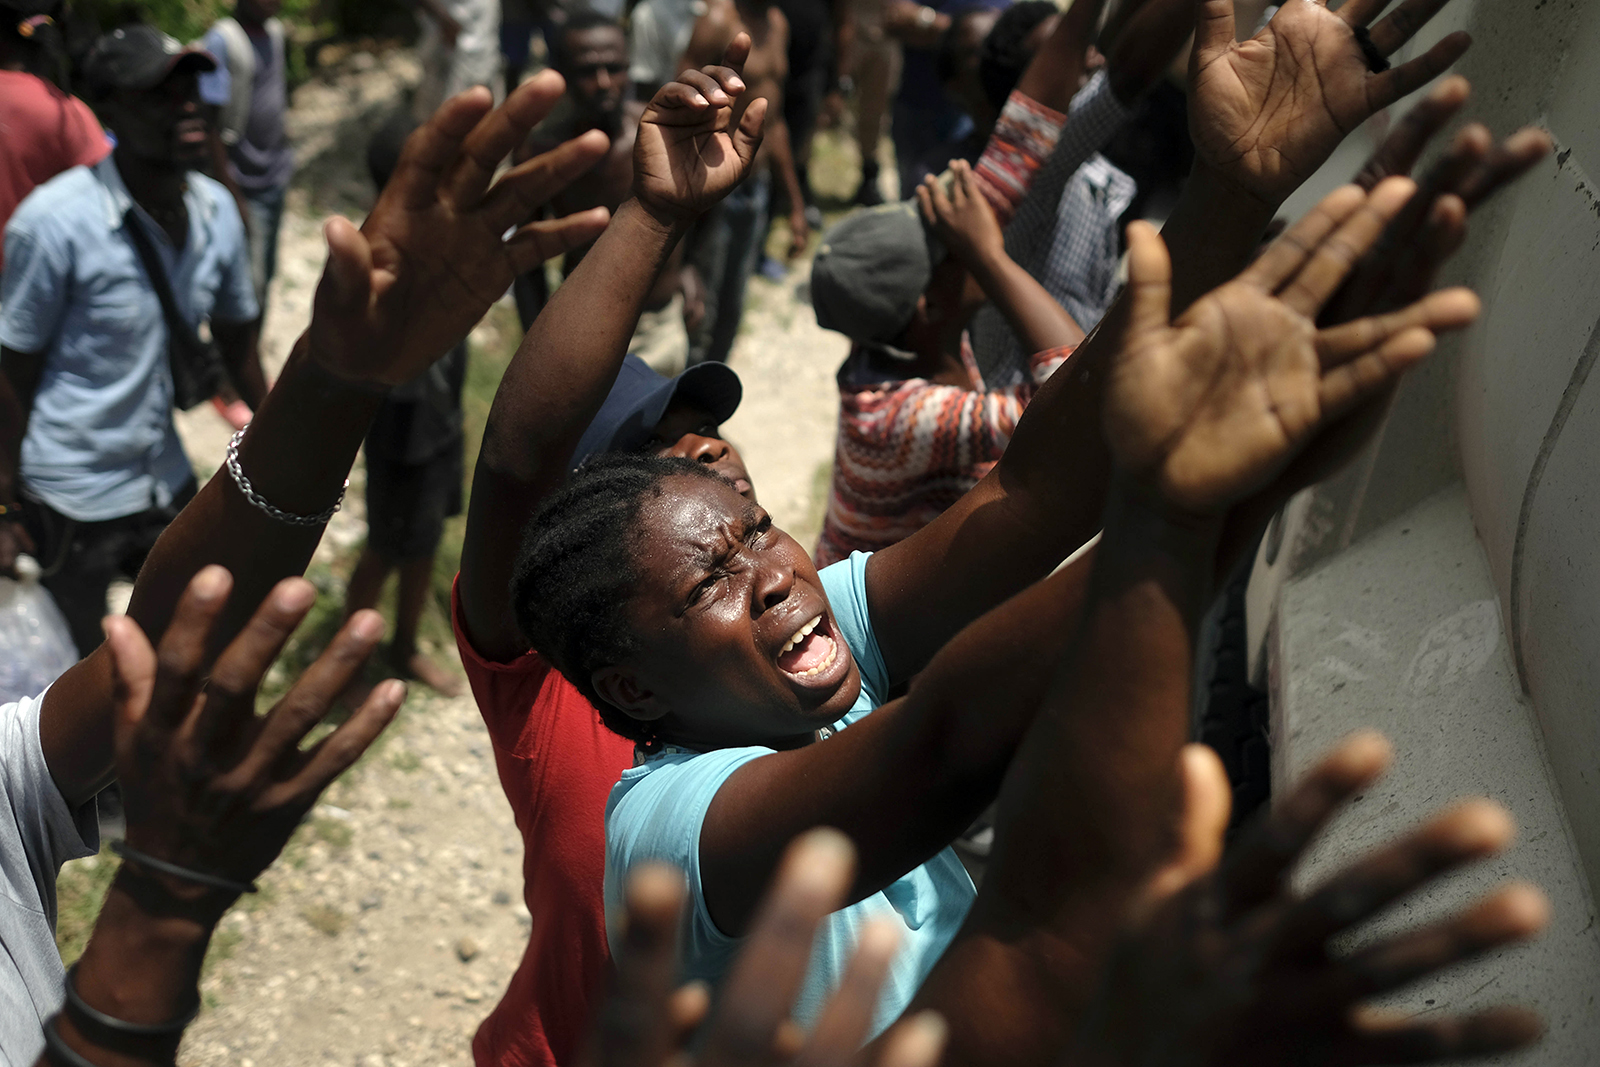 Earthquake victims reach for water being handed out with food distribution in the Picot neighborhood in Les Cayes, Haiti, Aug. 22, 2021, eight days after a 7.2 magnitude earthquake hit the area. (AP Photo/Matias Delacroix)